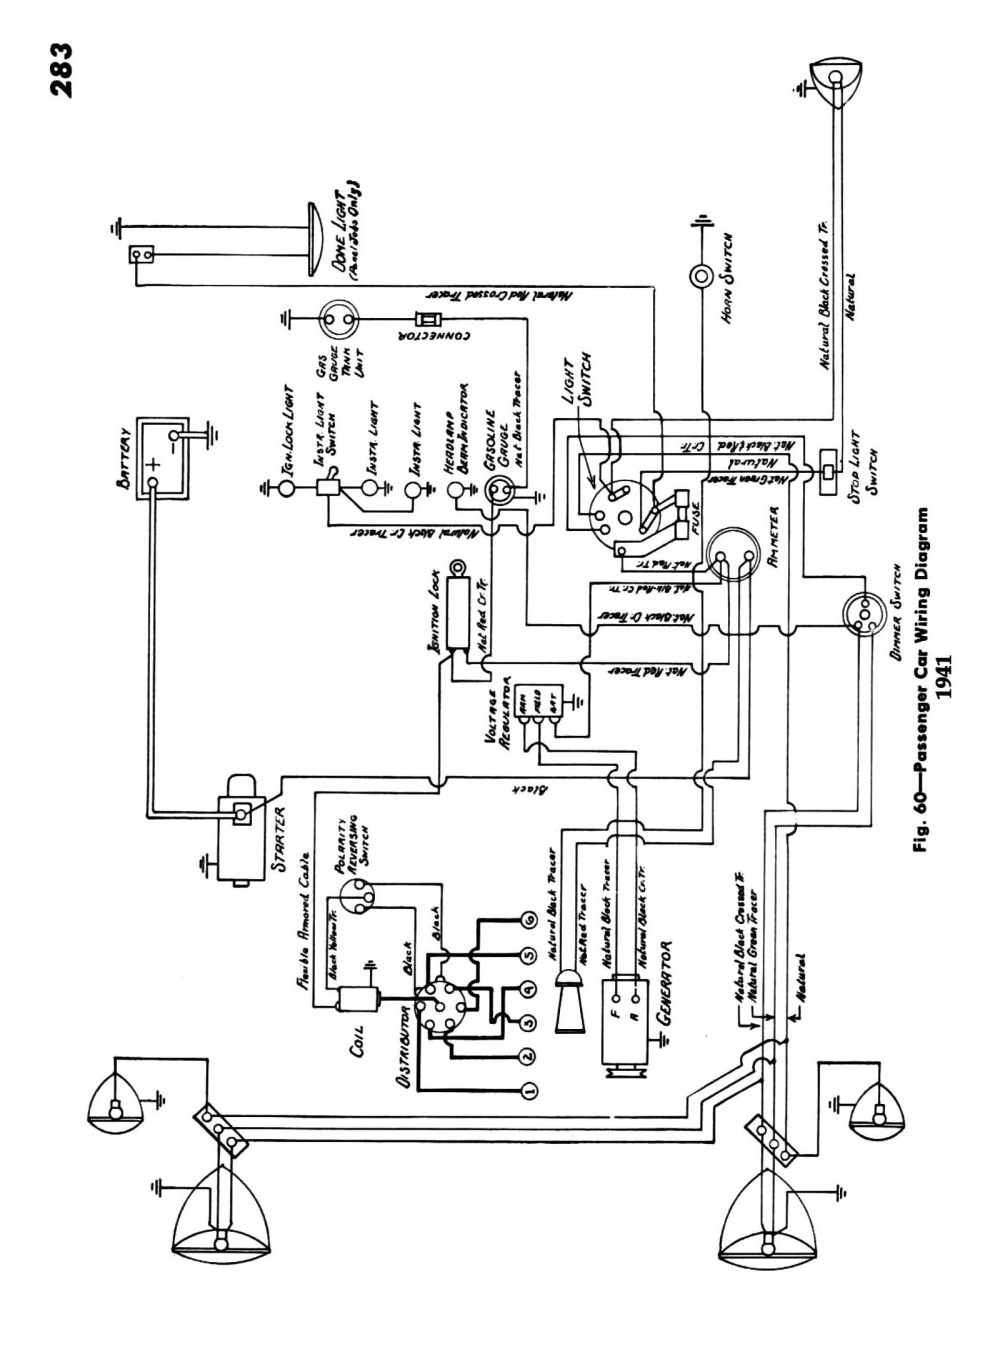 medium resolution of 6 volt positive ground electrical system wiring diagram wiring libraryplymouth ac wiring diagram opinions about wiring